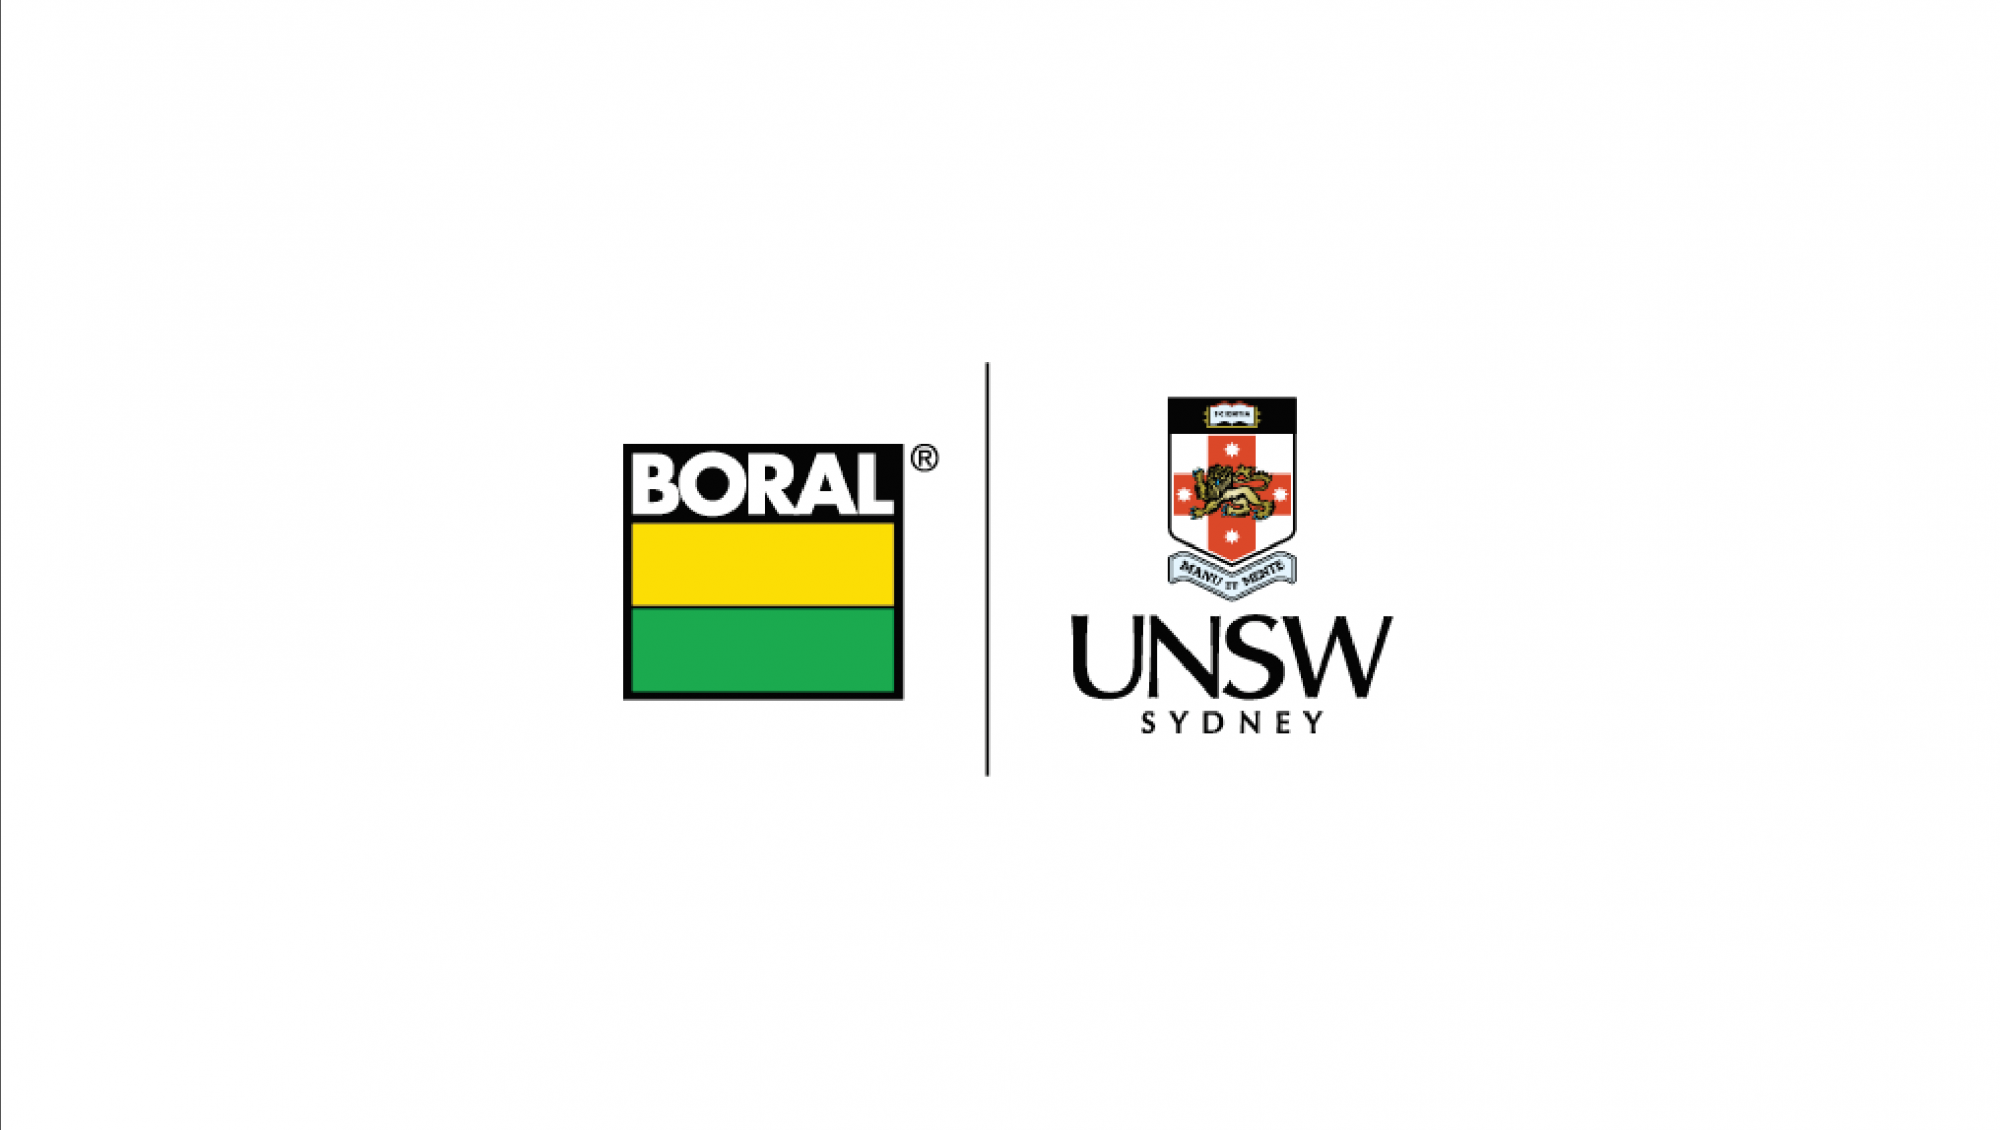 UNSW Partnership